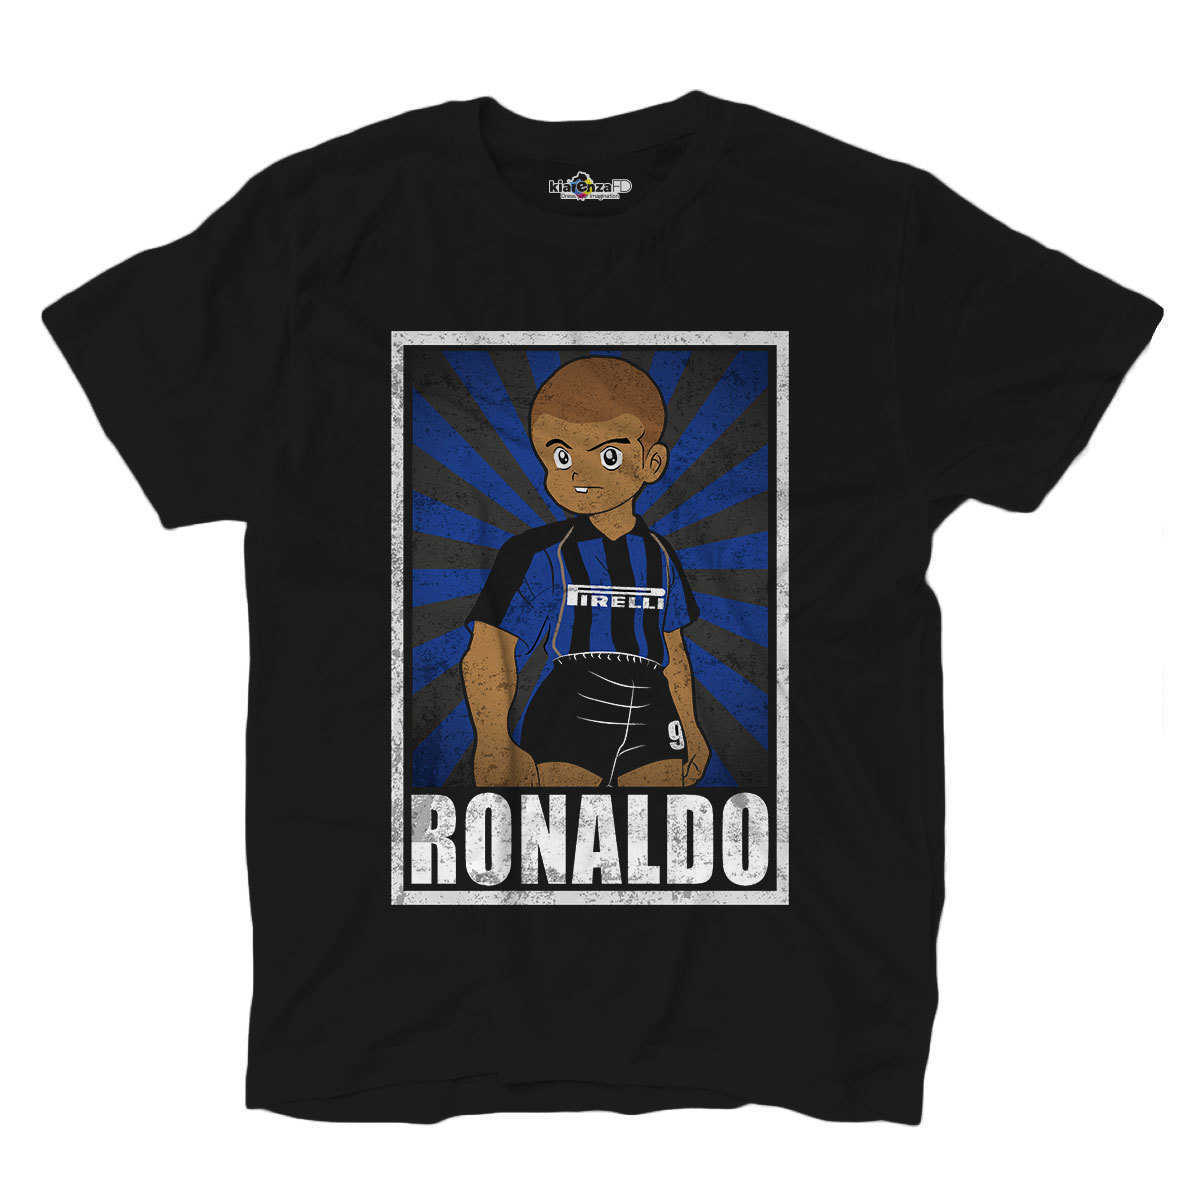 Football <font><b>T</b></font>-<font><b>shirt</b></font> <font><b>T</b></font> <font><b>Shirt</b></font> Vintage Ronaldo <font><b>Inter</b></font> <font><b>Milan</b></font> Legend Spoof Holly and Benji Grunge S image